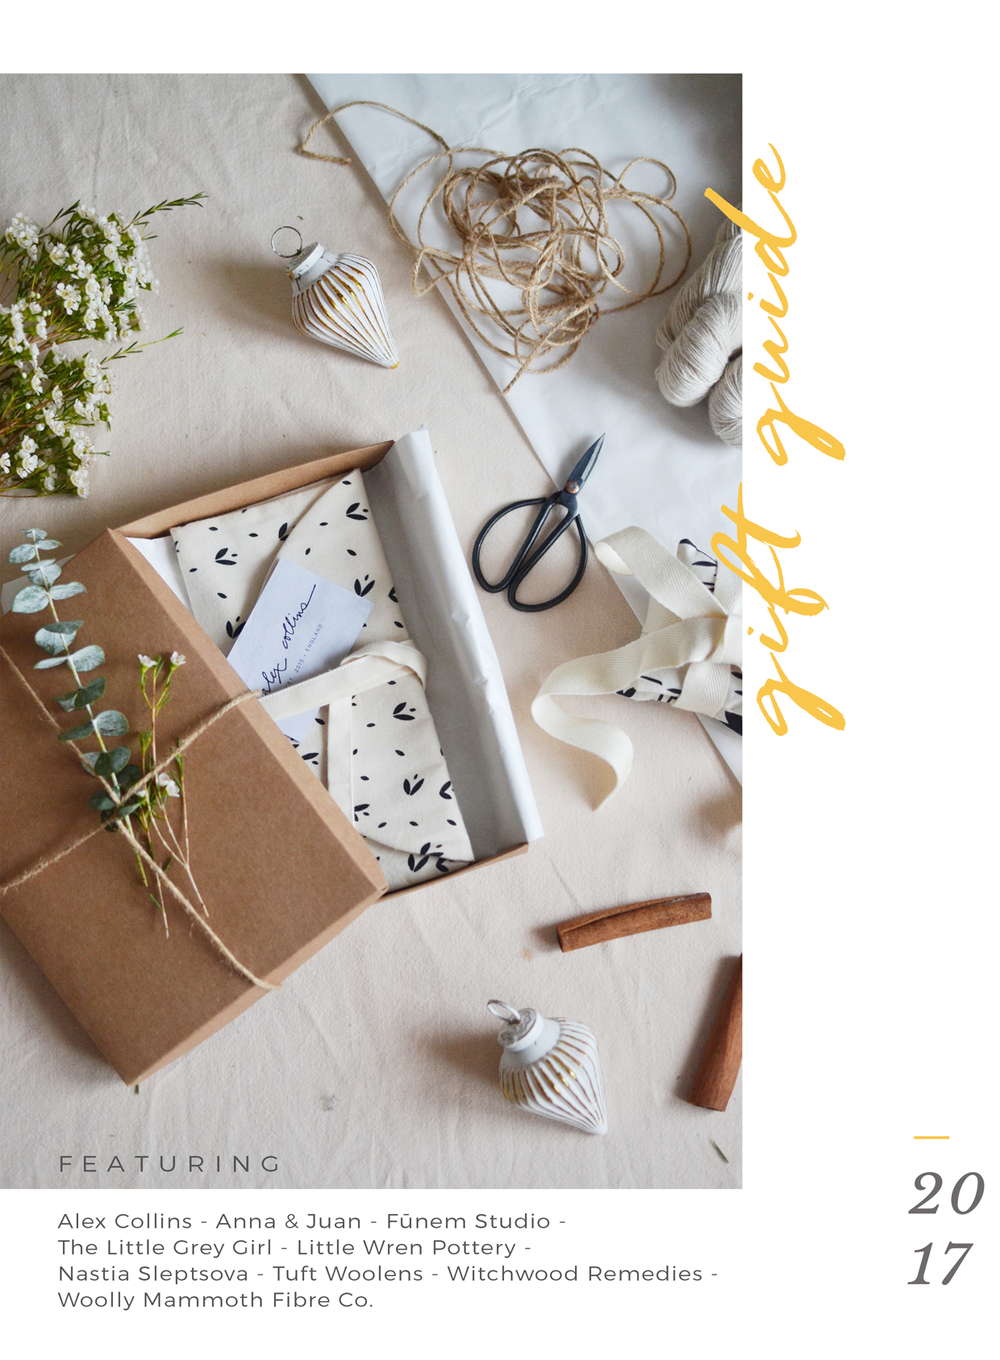 Holiday Gift Guide for Knitters 2017 cover.png